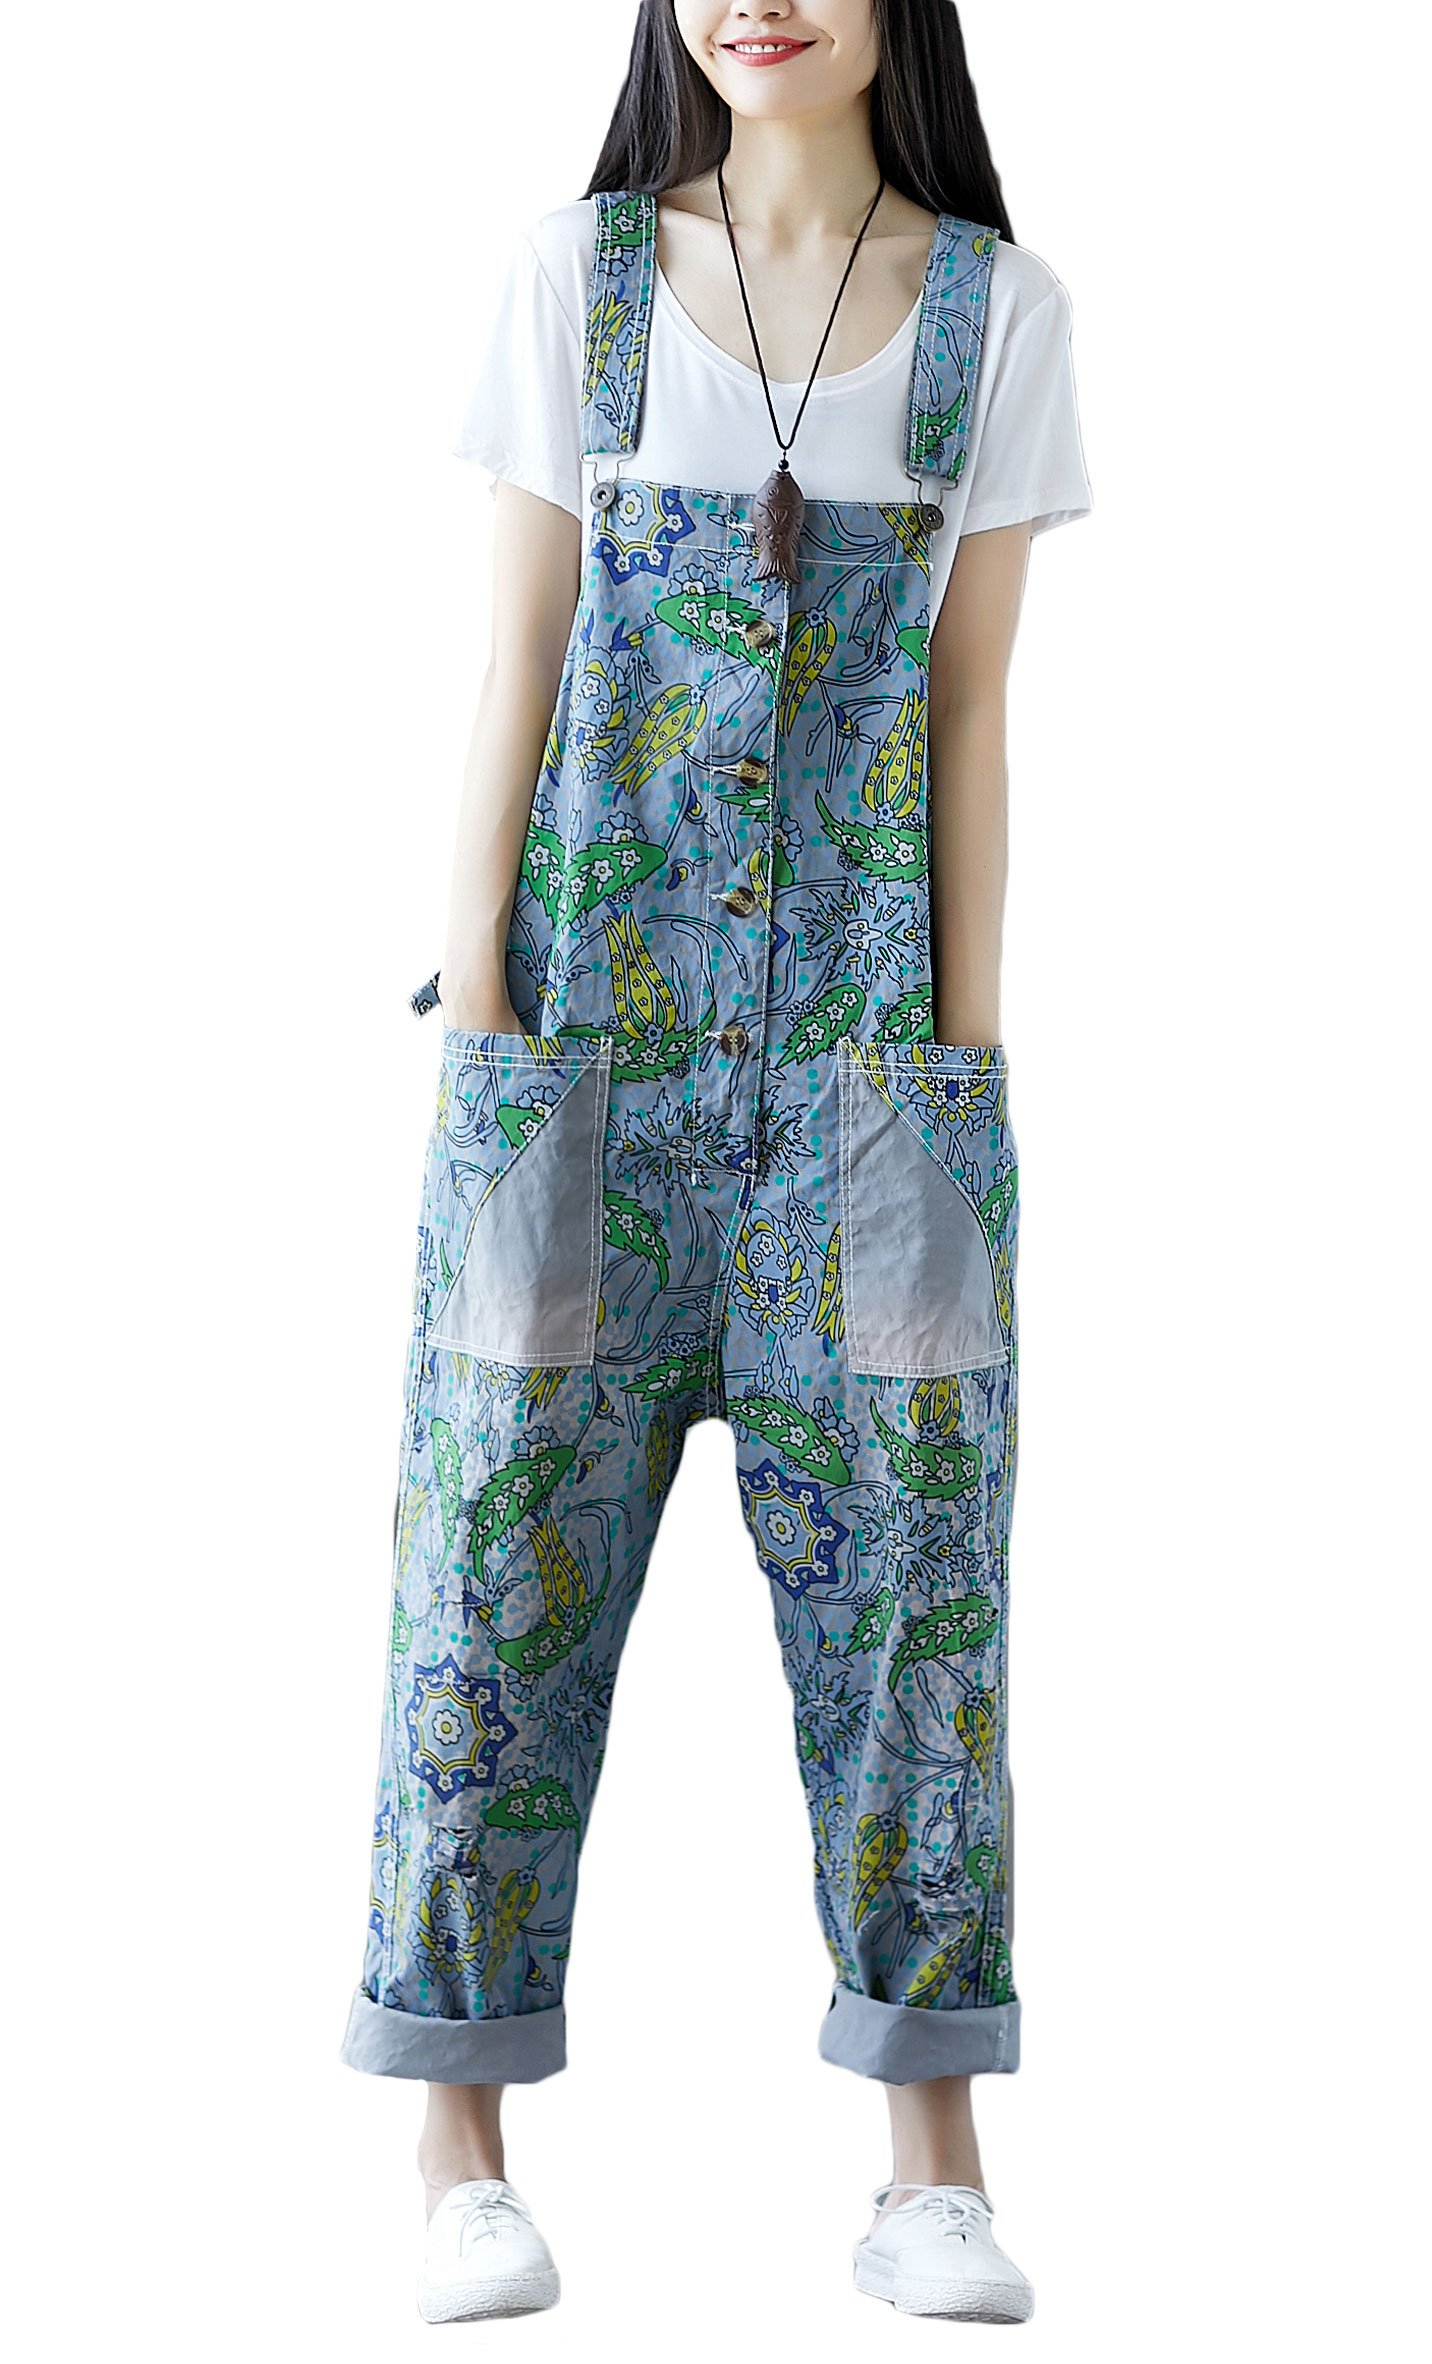 Soojun Women's Floral Pattern Suspender Trousers Bib Overalls with Pockets, Style 2 Blue